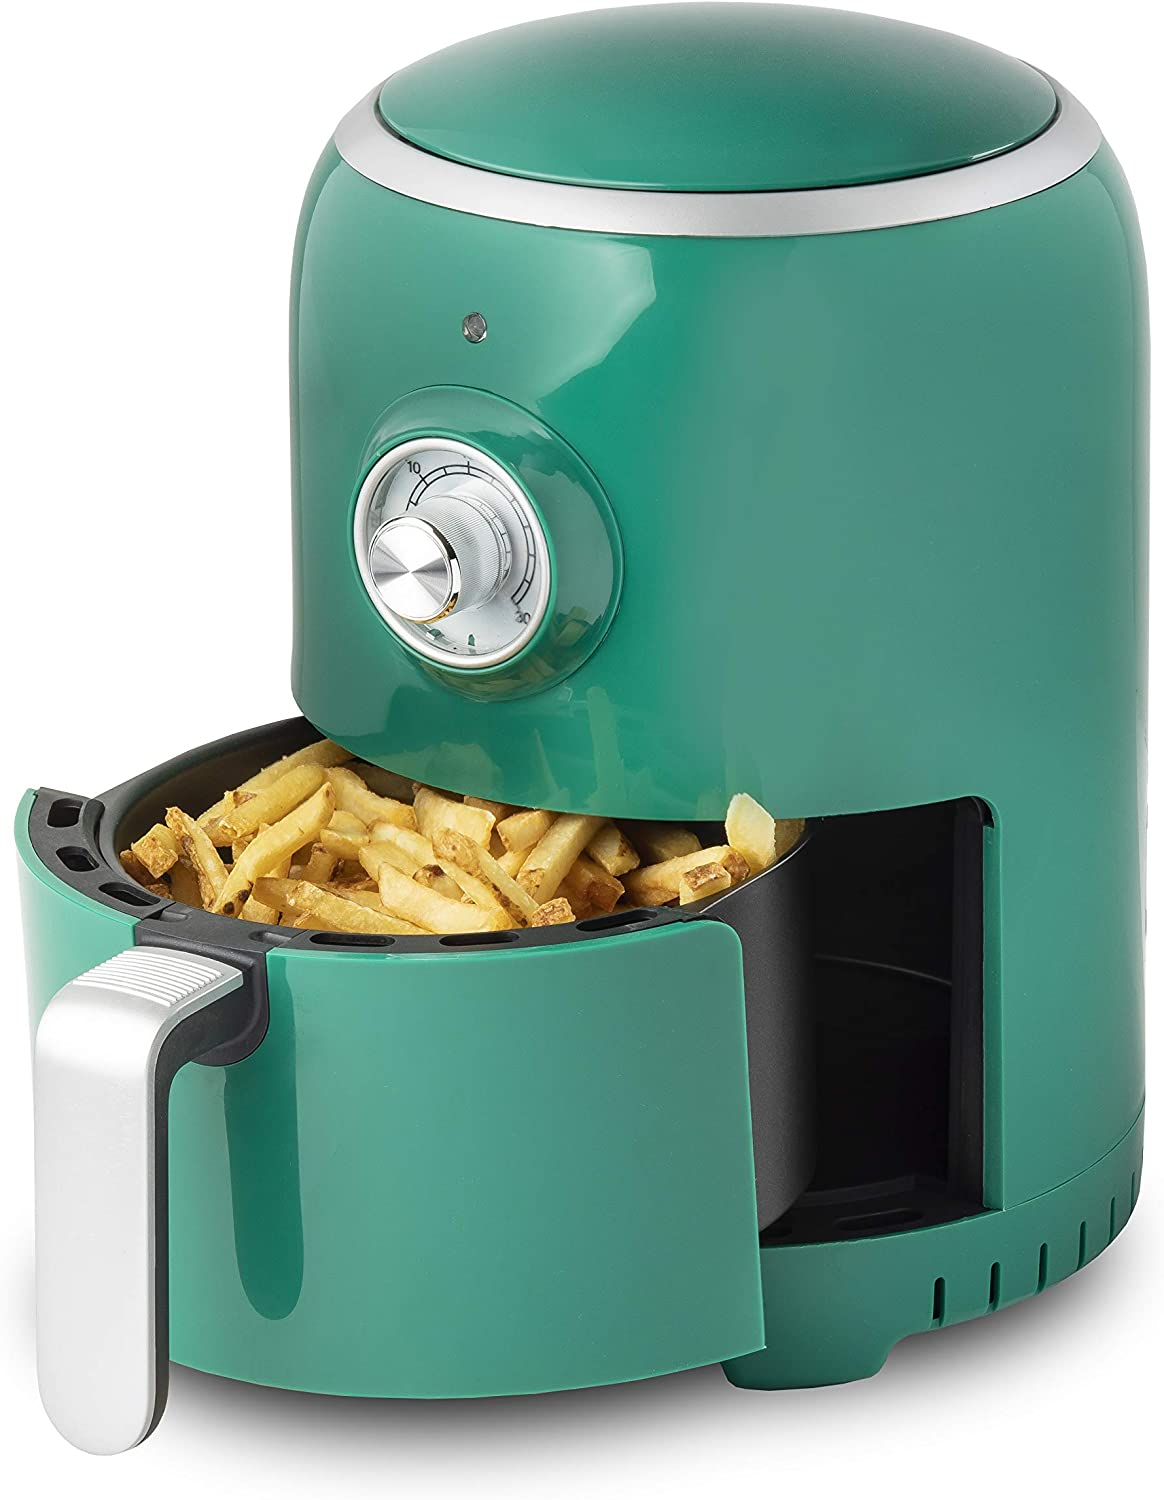 Aria Air Fryers RAG-596 Air Fryer, 2Qt, Dark Green With White Trim & Basket Handle